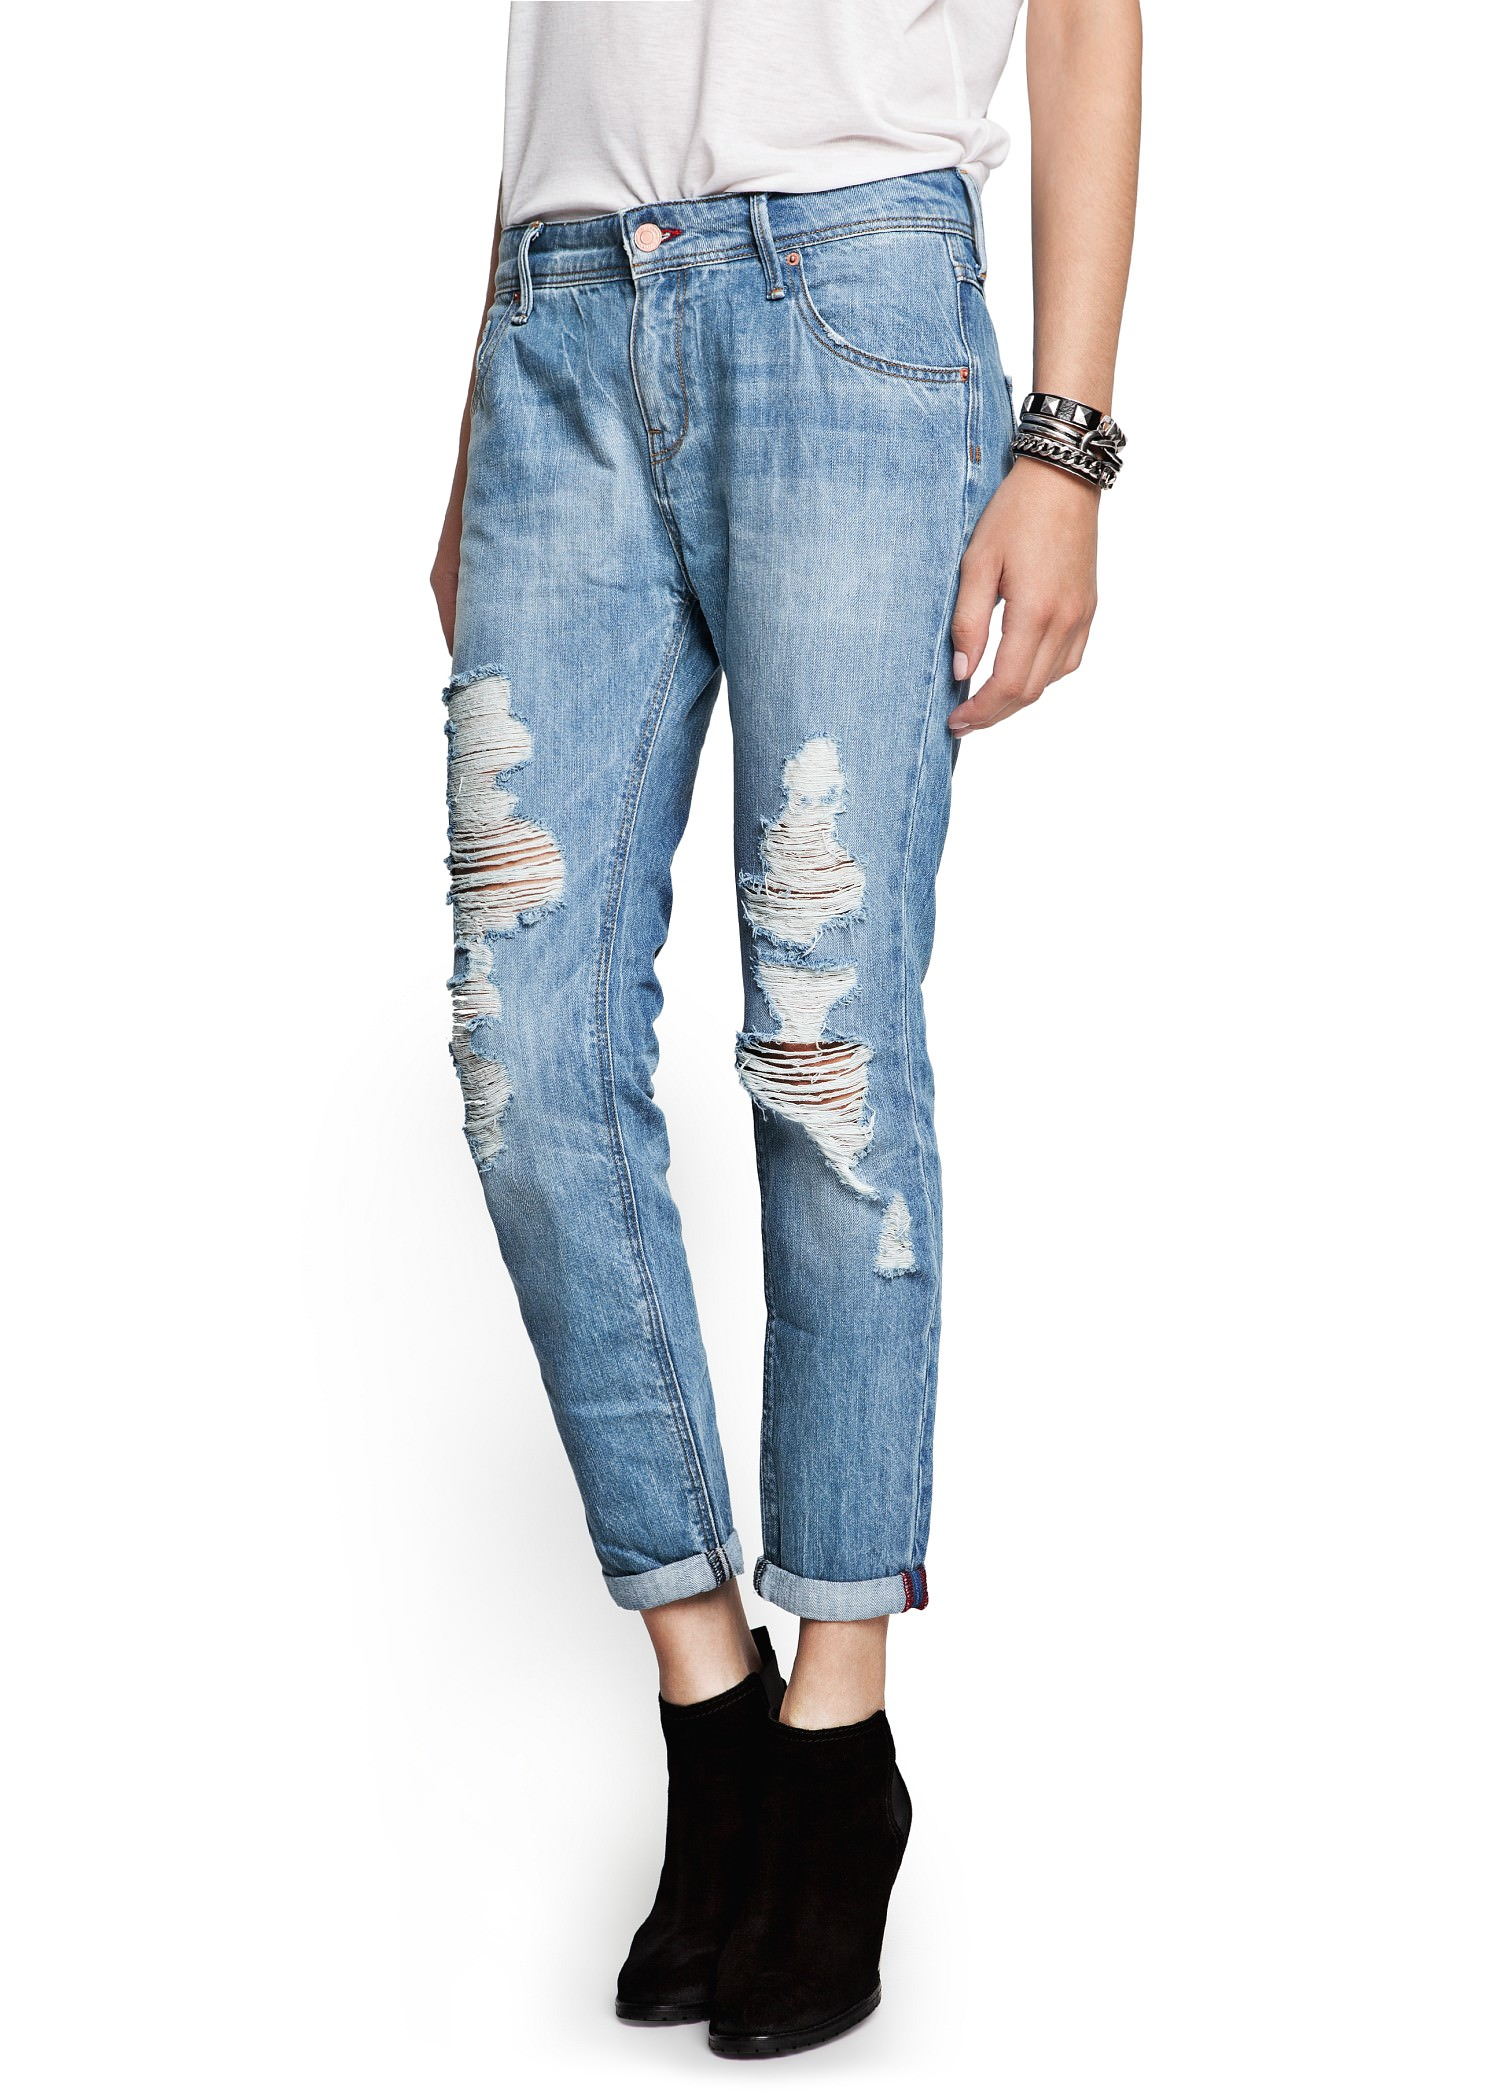 wash ripped boyfriend jeans - Women | MANGO